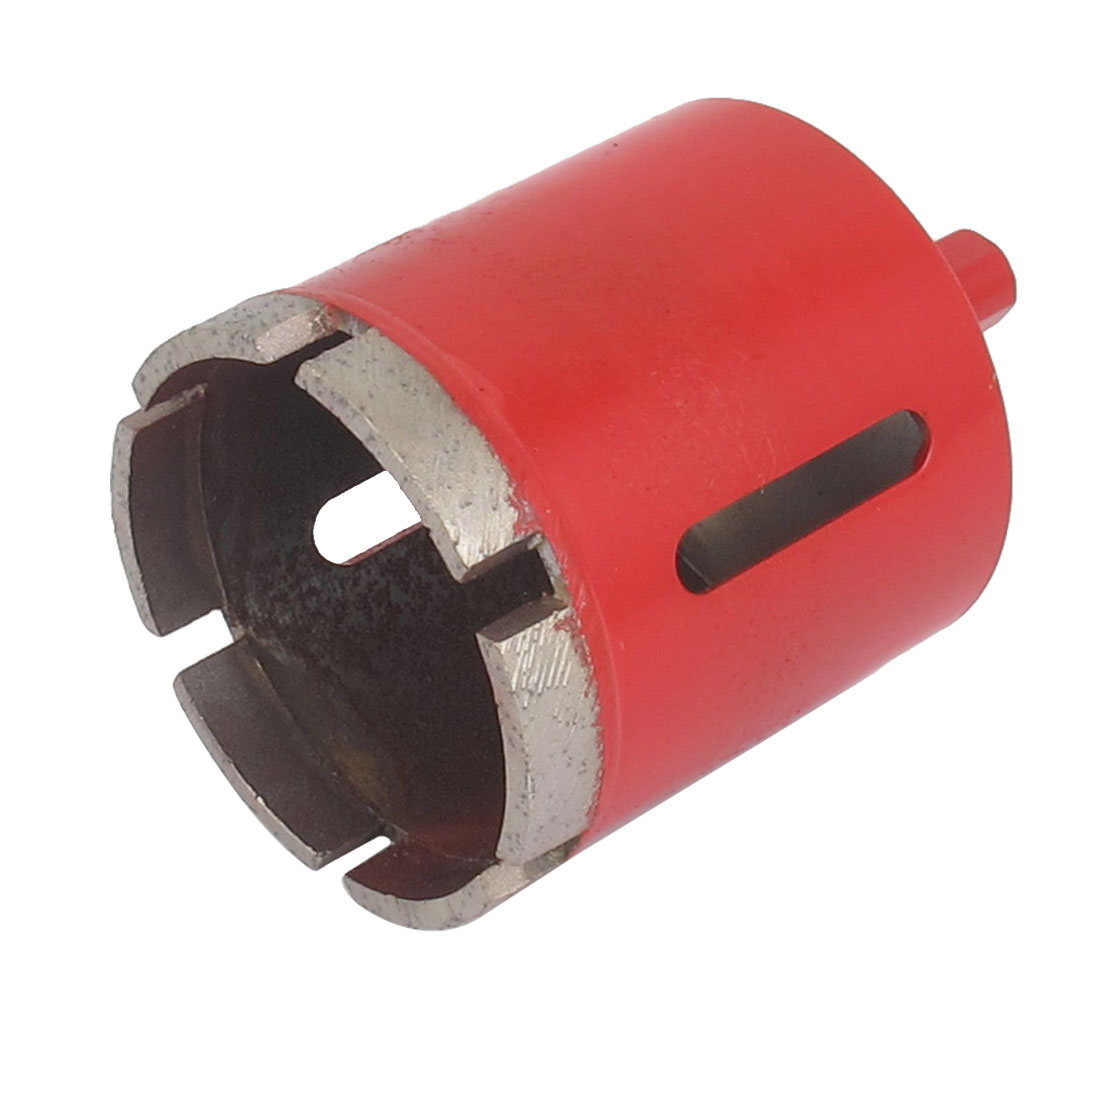 Red Housing 10mm Shank 55mm Dia Granite Marble Wet Dry Diamond Hole Saw Cutter